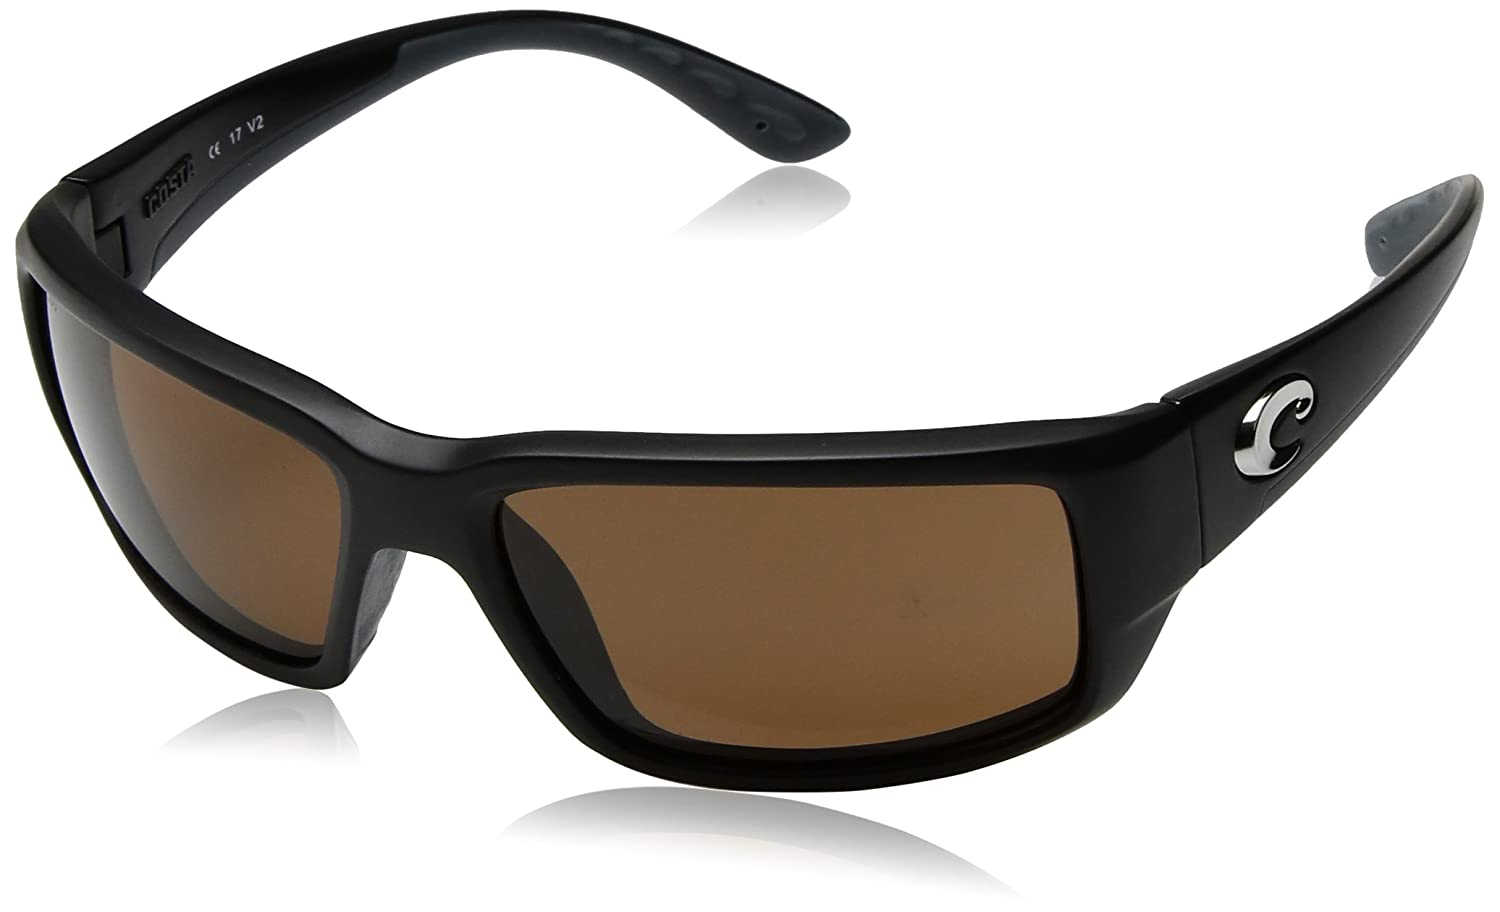 ba50efa9d1 Amazon.com  Costa Del Mar Blackfin Sunglasses  Sports   Outdoors